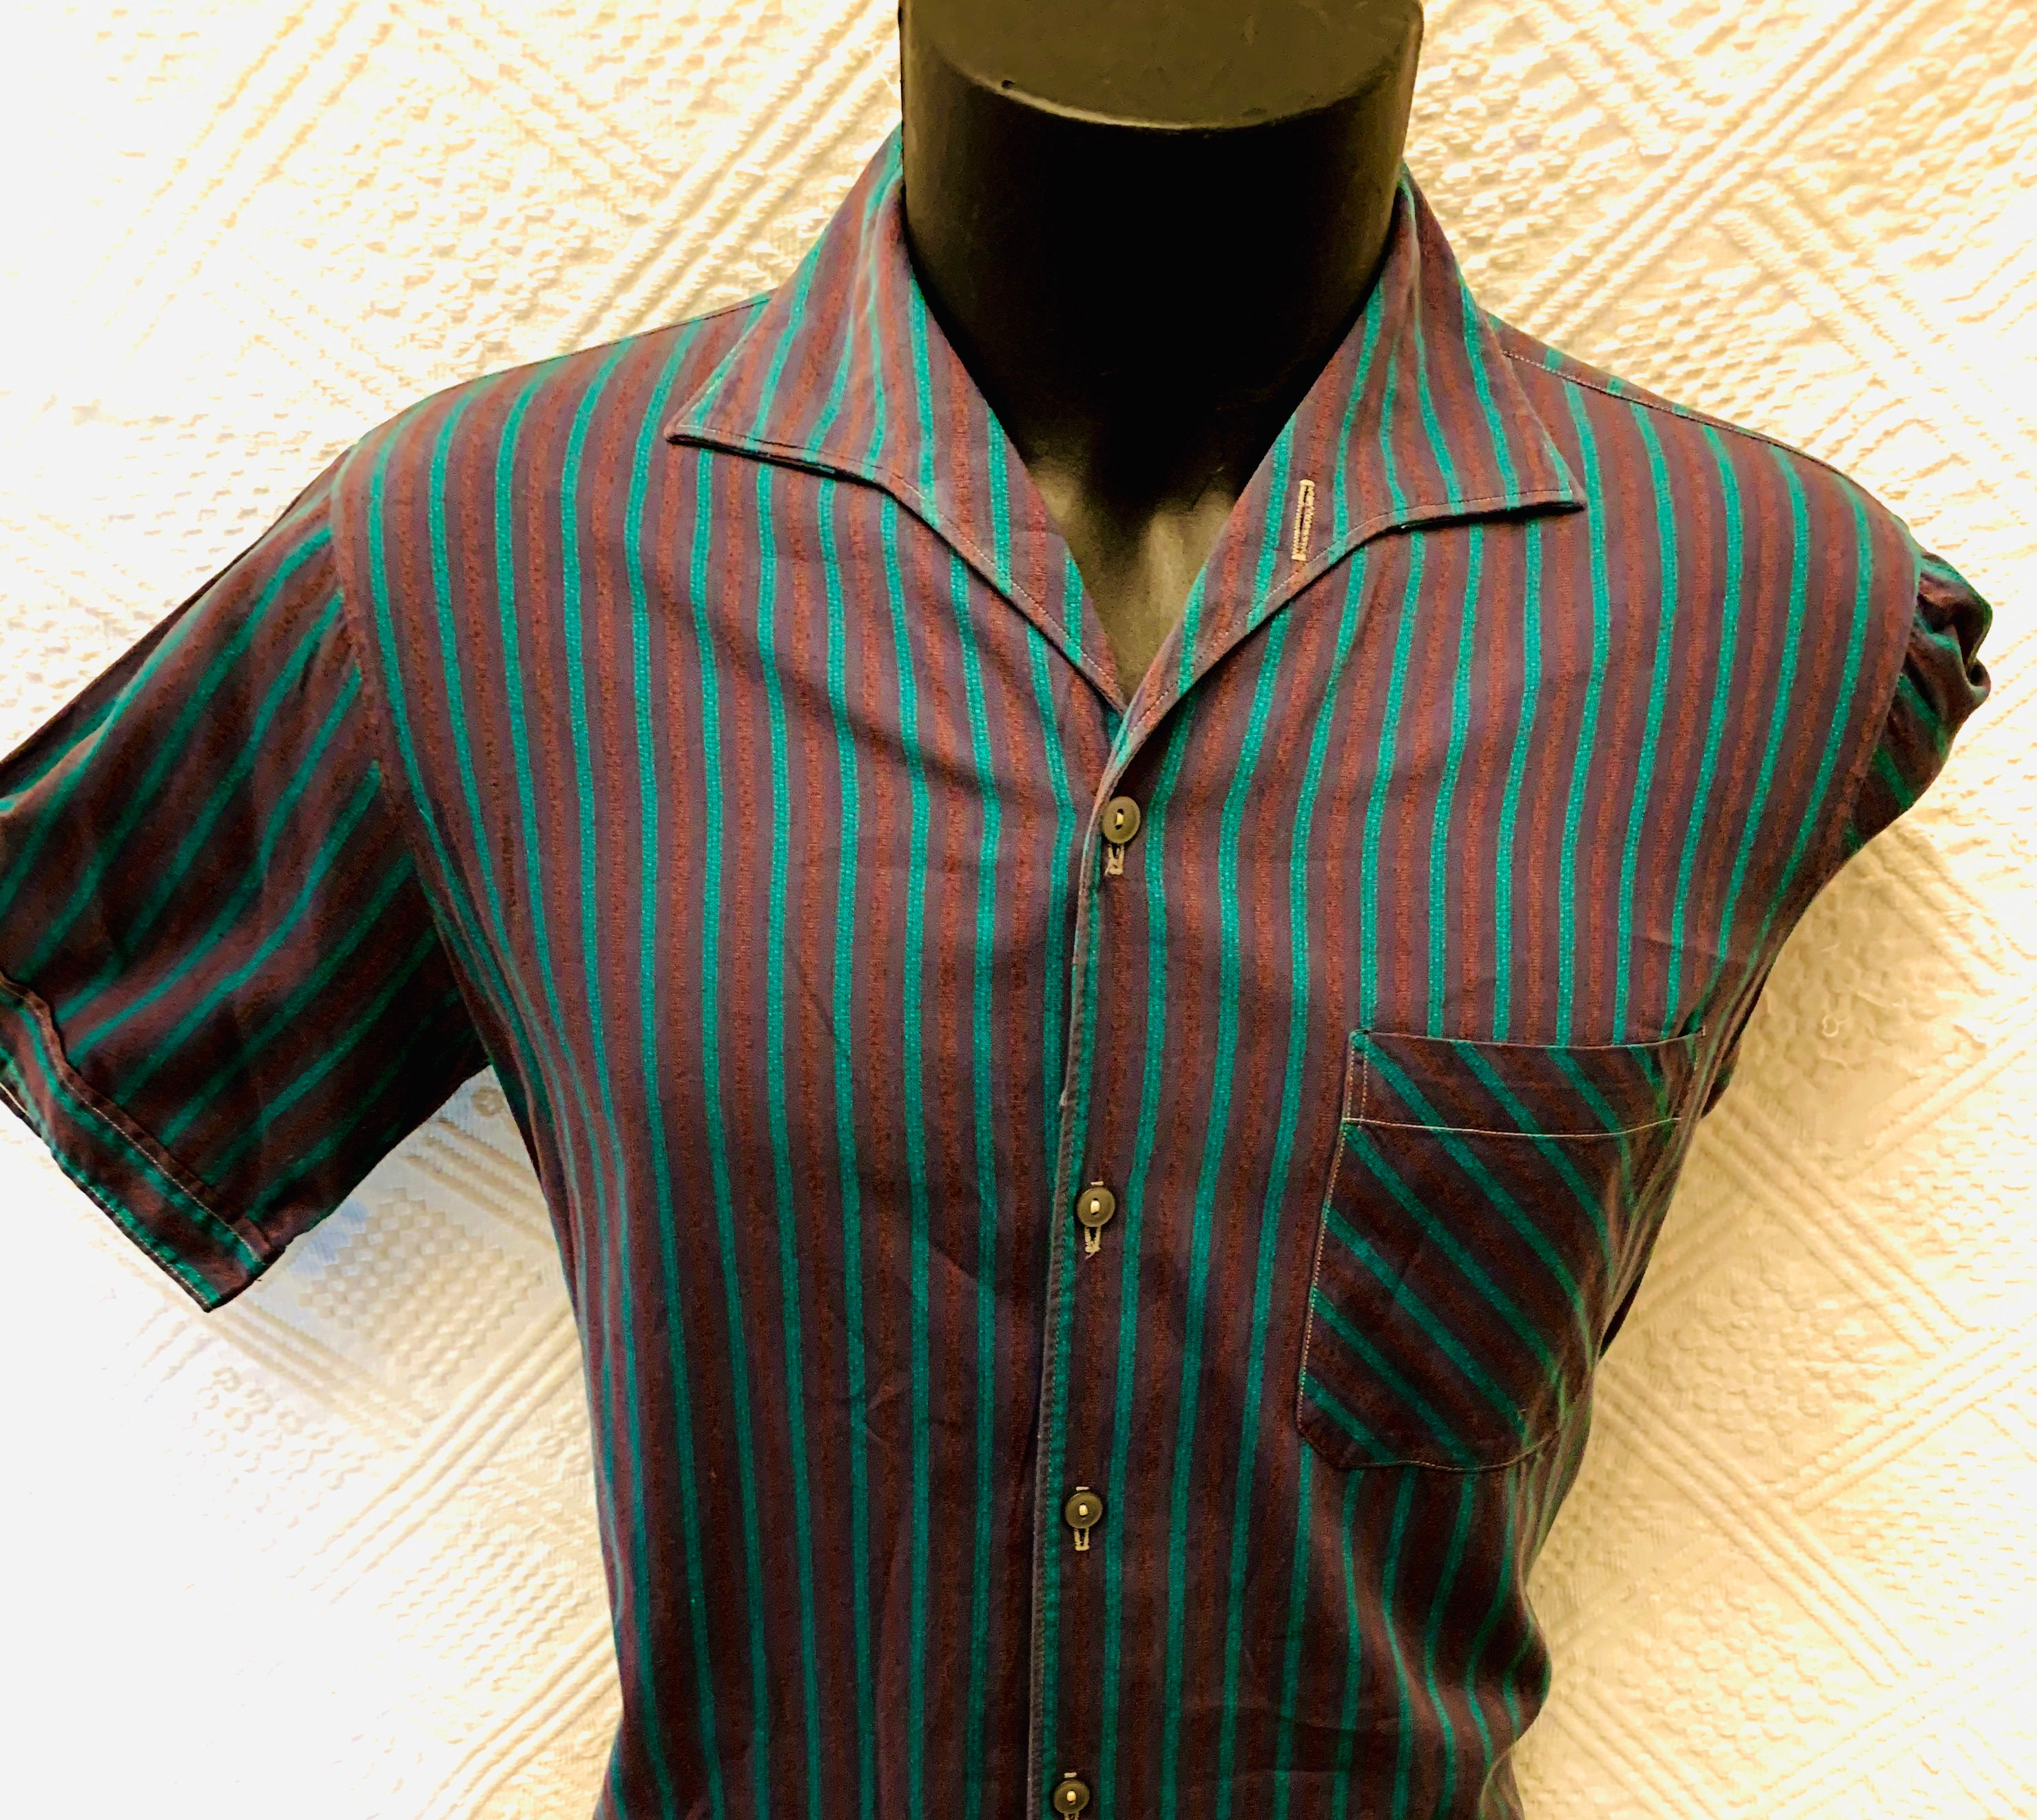 1950s Men's Ties, Bow Ties – Vintage, Skinny, Knit 1950s Mens Turquoise  Burnt Umber Striped Shirt By Spada Italy $129.53 AT vintagedancer.com